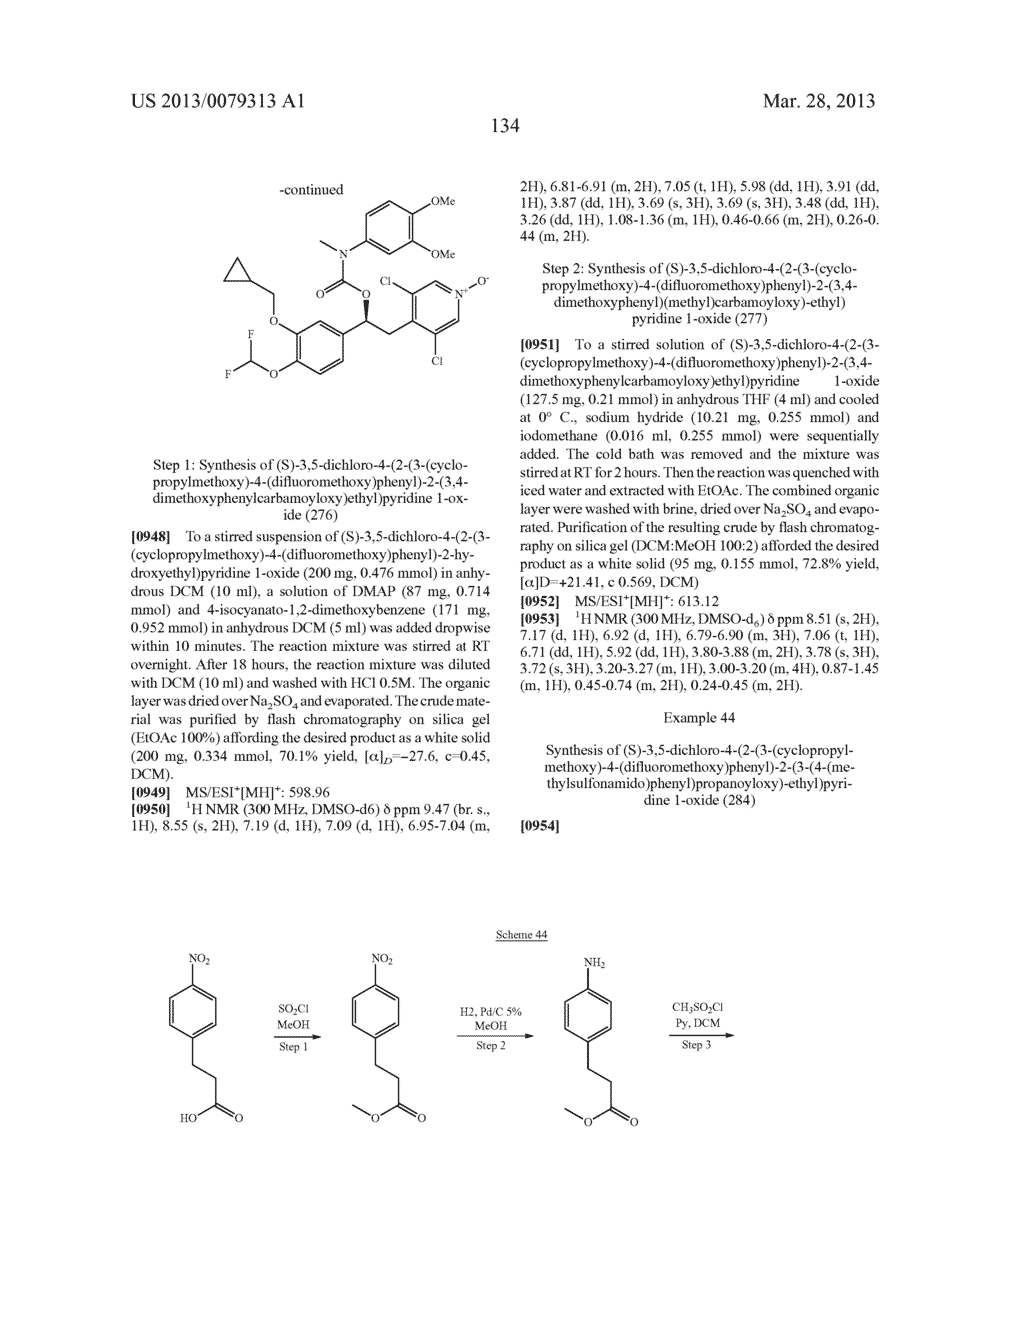 DERIVATIVES OF 1-PHENYL-2-PYRIDINYL ALKYL ALCOHOLS AS PHOSPHODIESTERASE     INHIBITORS - diagram, schematic, and image 135